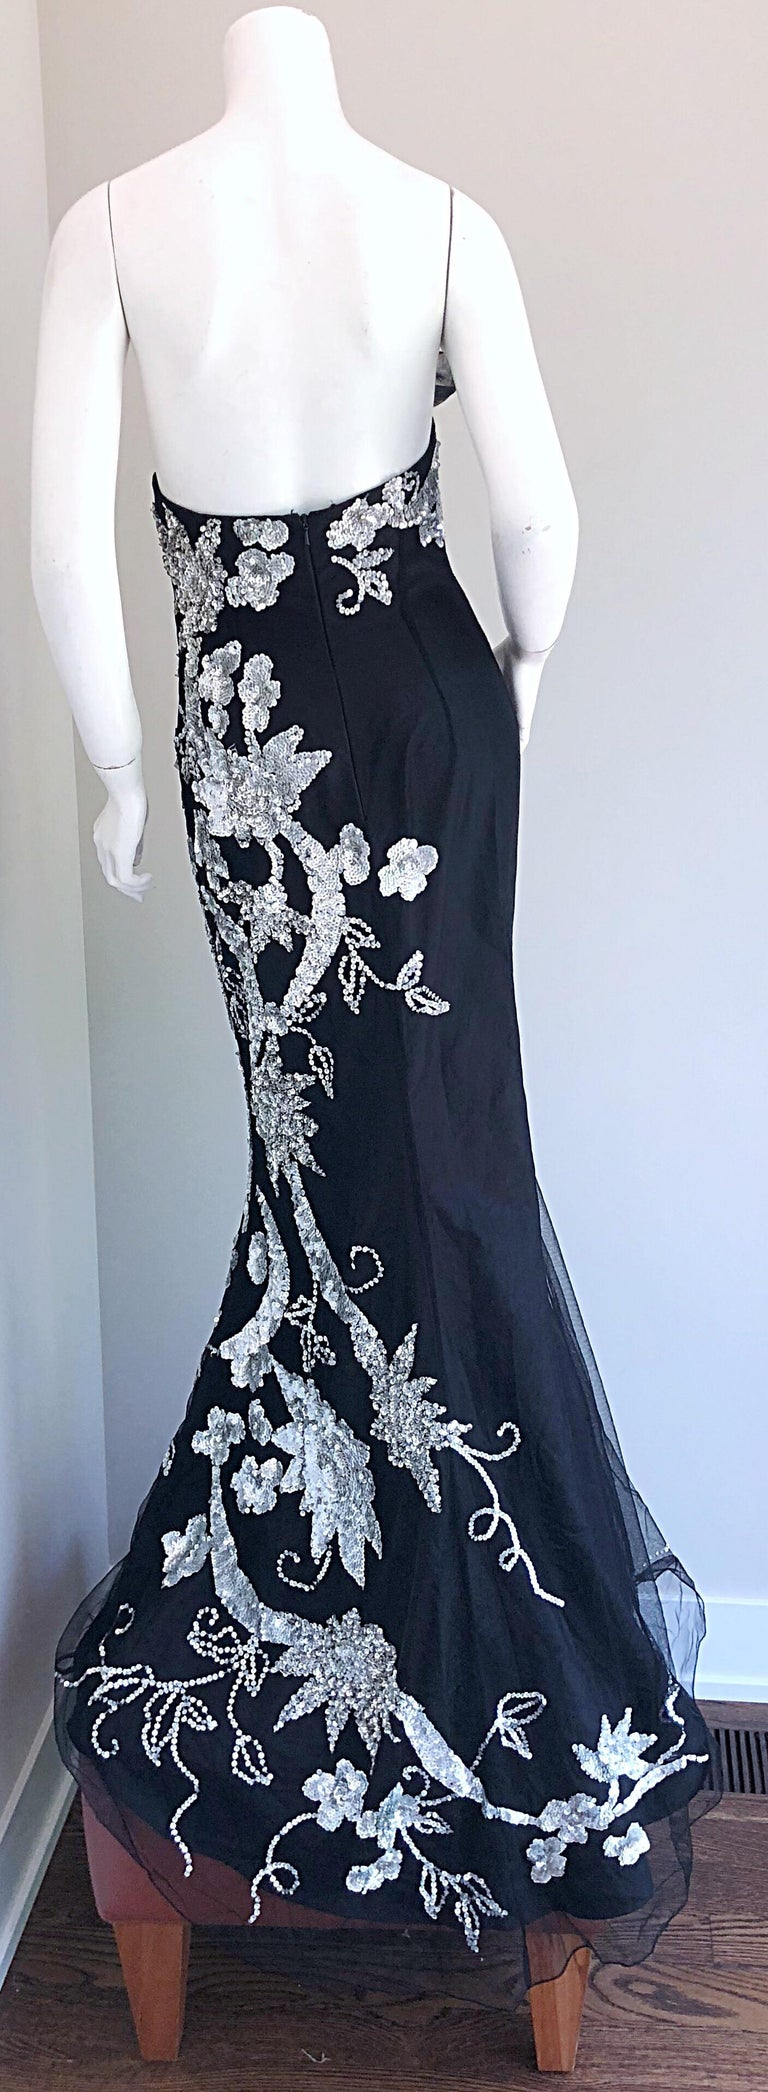 Women's Gorgeous 1990s Black and Silver Sequined Dramatic Strapless Vintage 90s Gown